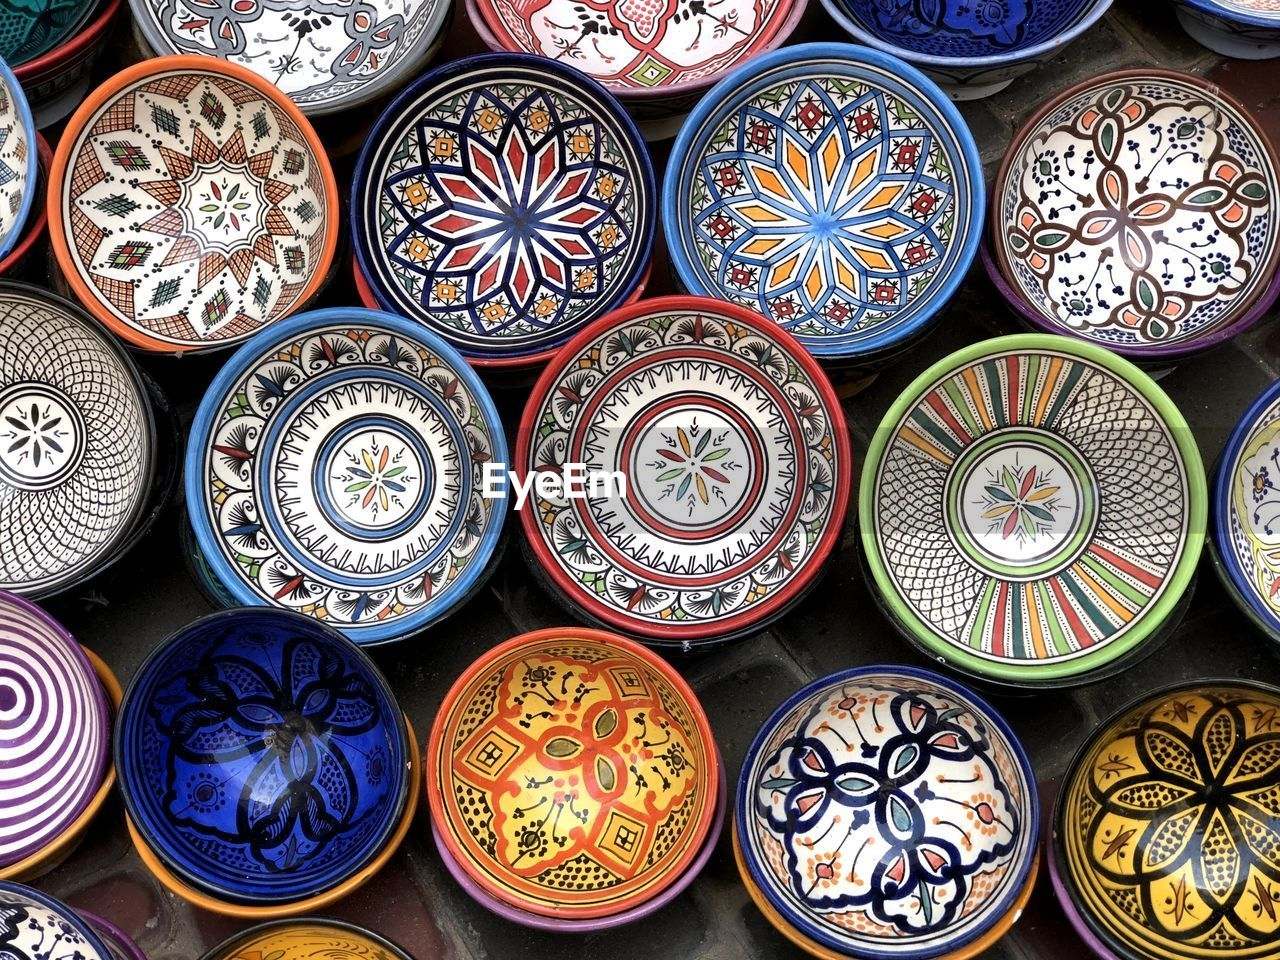 Full frame shot of patterned pottery for sale at market stall